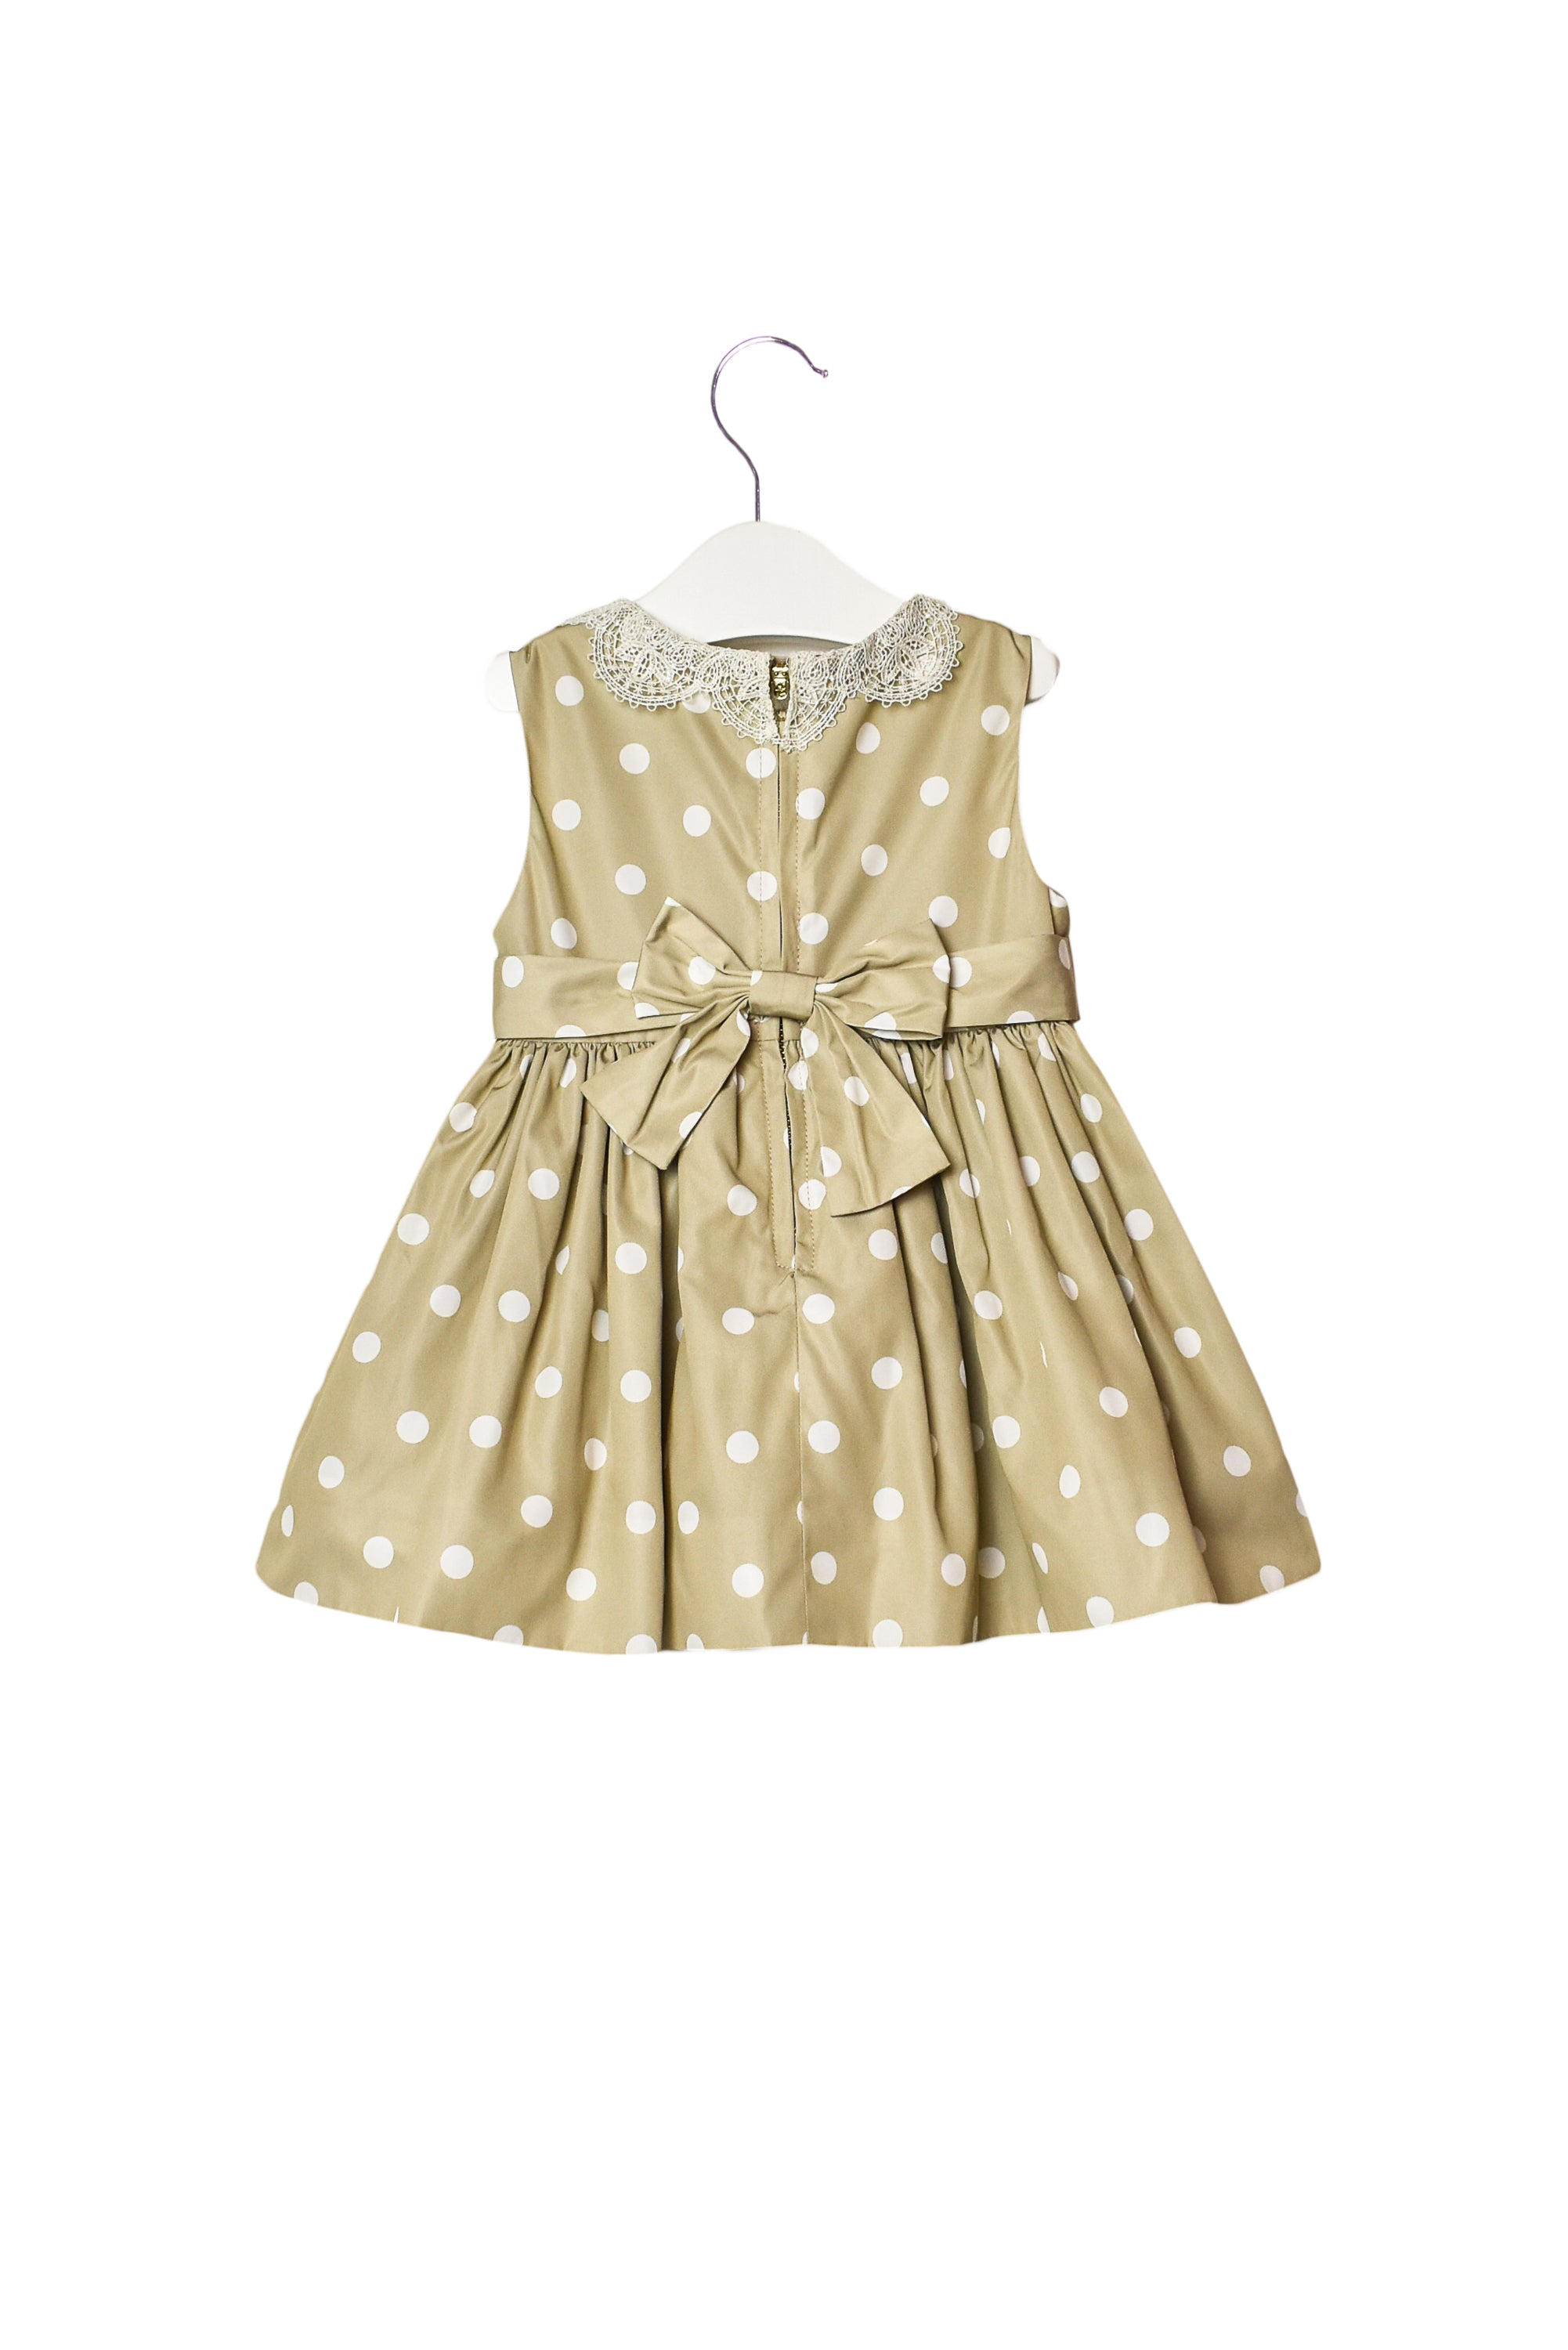 10007933 Jason Wu Neiman Marcus Target Baby~ Dress and Bloomer 12M at Retykle